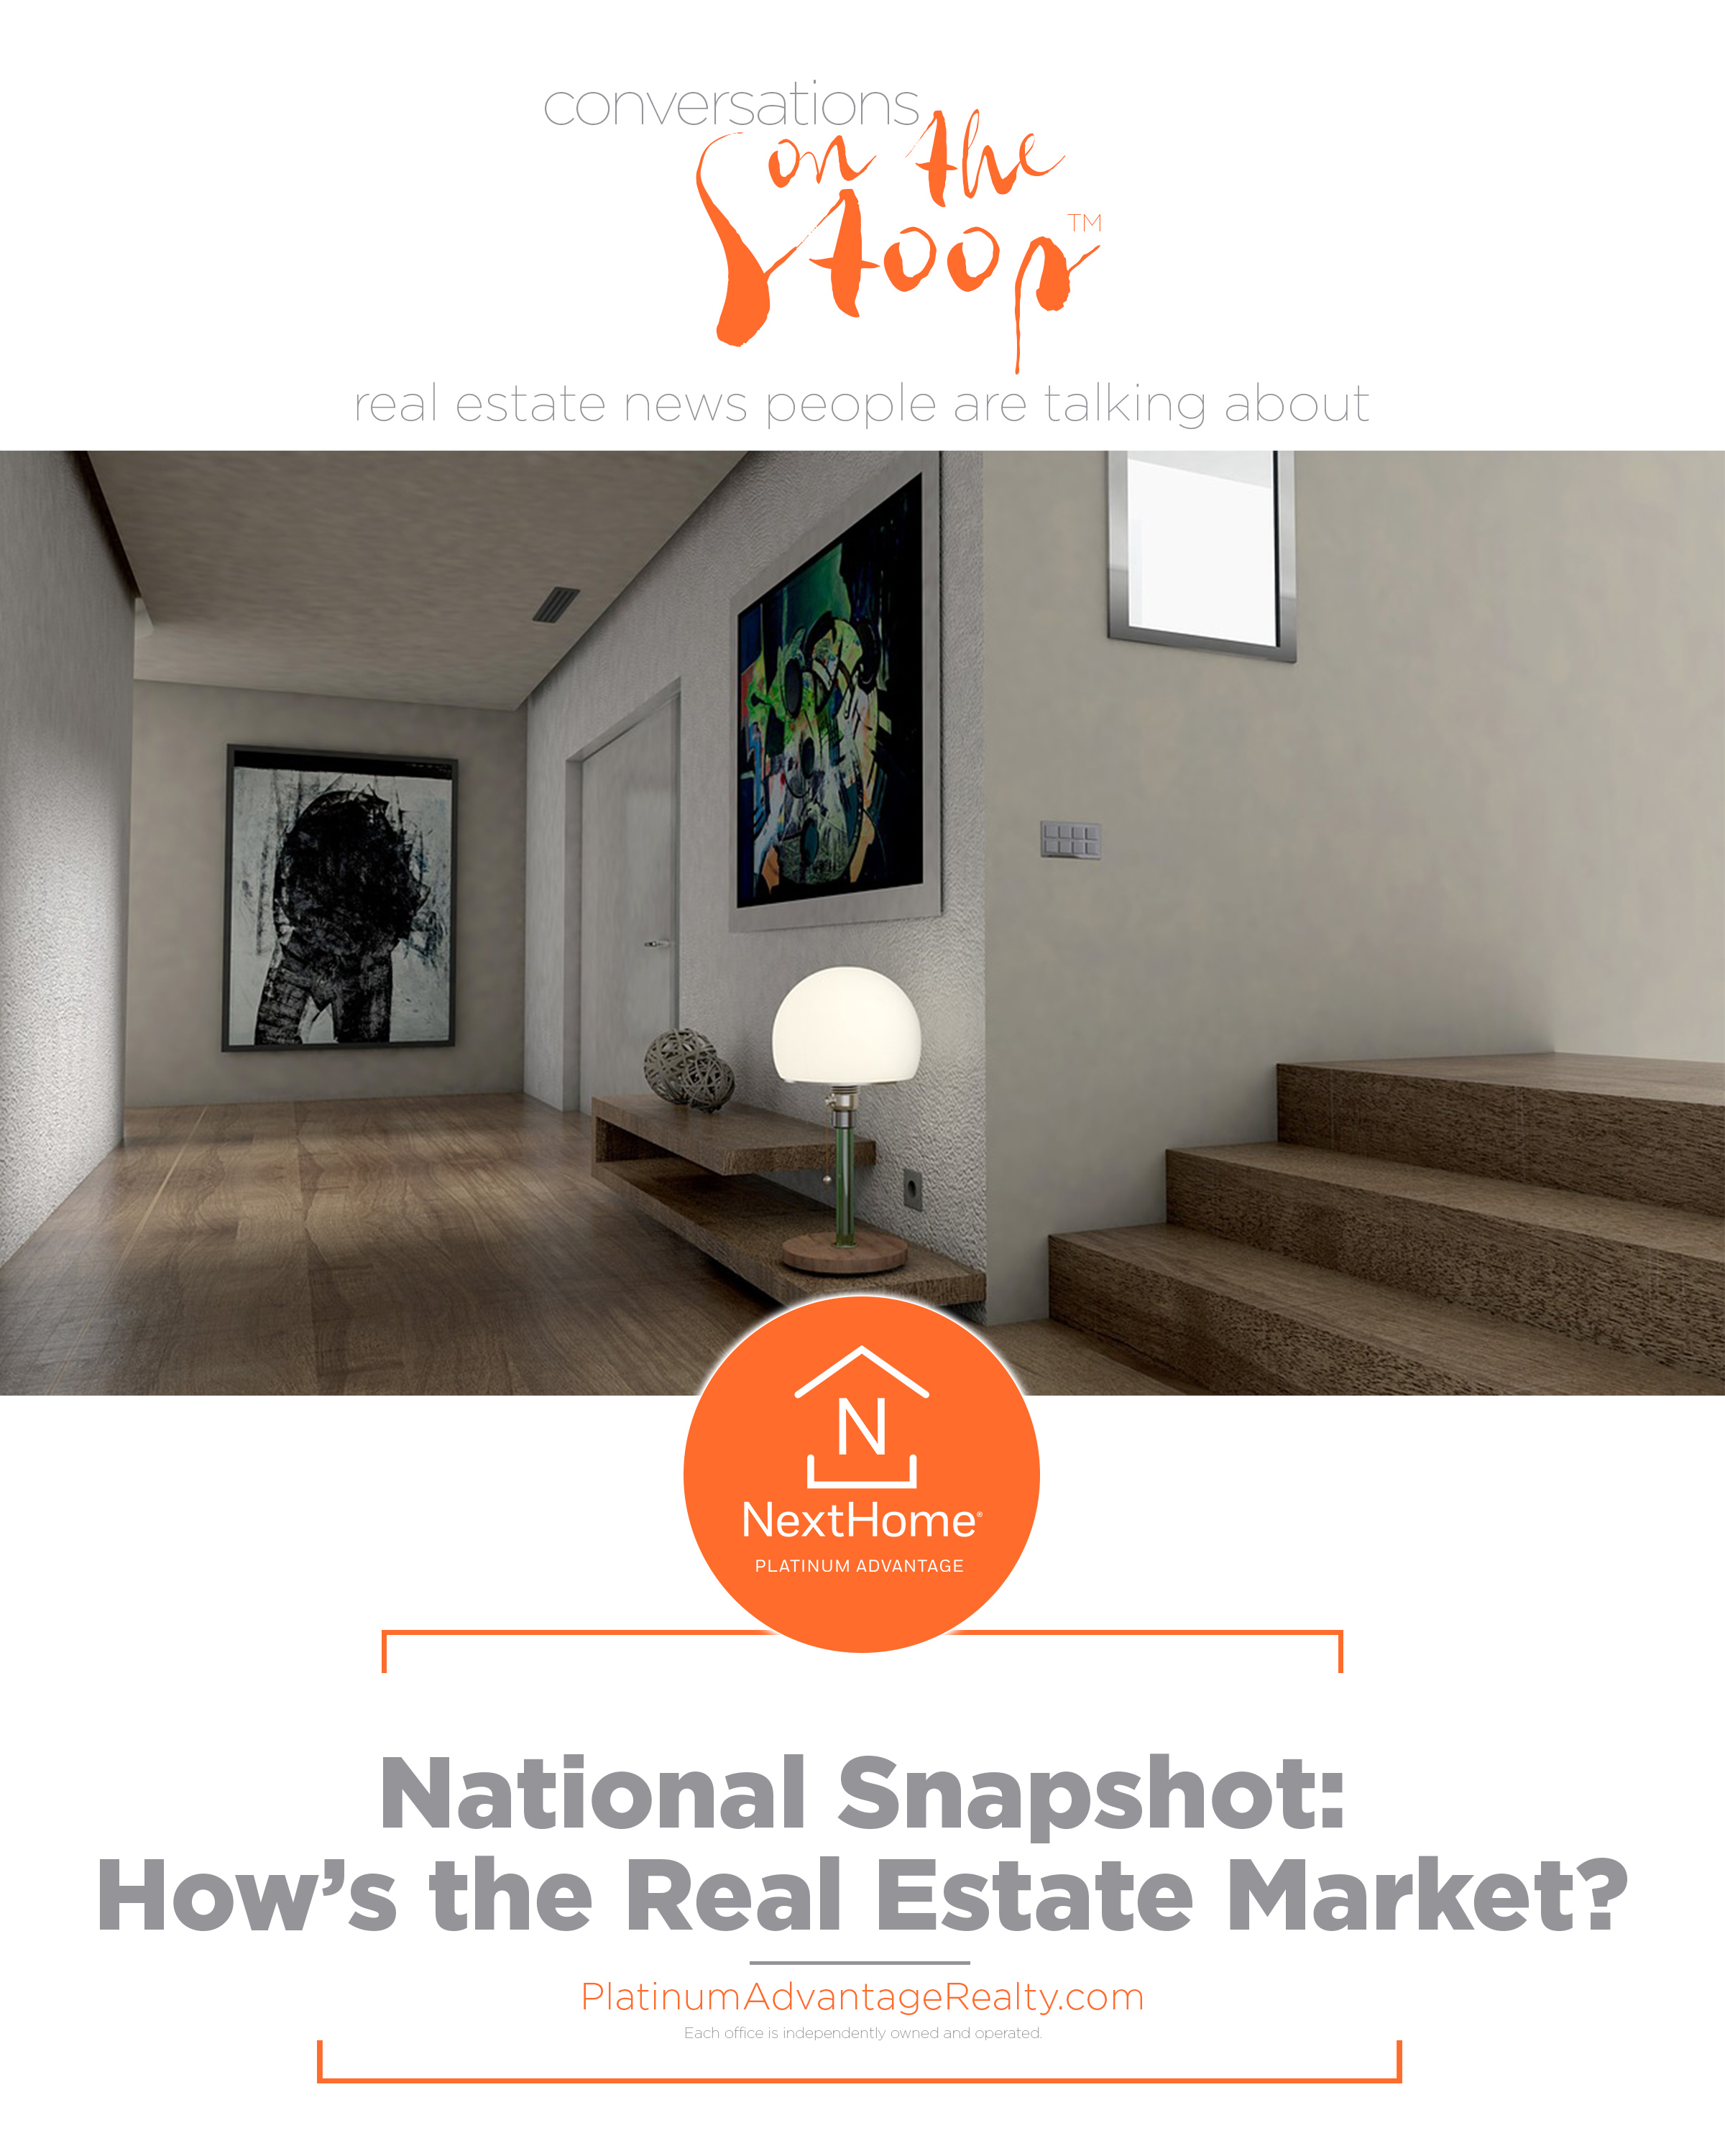 National Snapshot: How's the Real Estate Market?